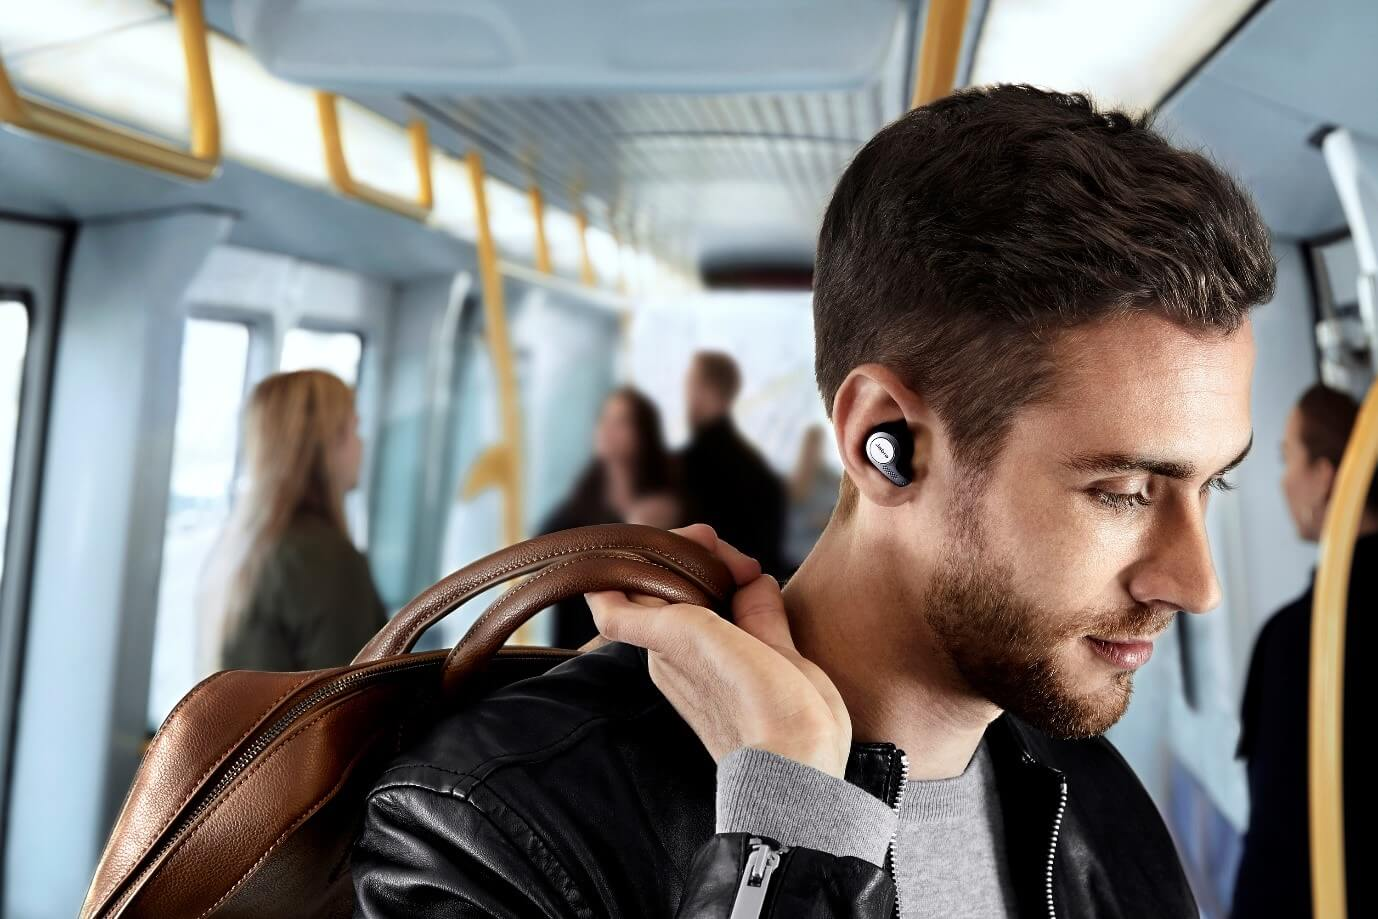 2cdf0f7950e January, 2018 Jabra launches Third Generation true wireless earbuds